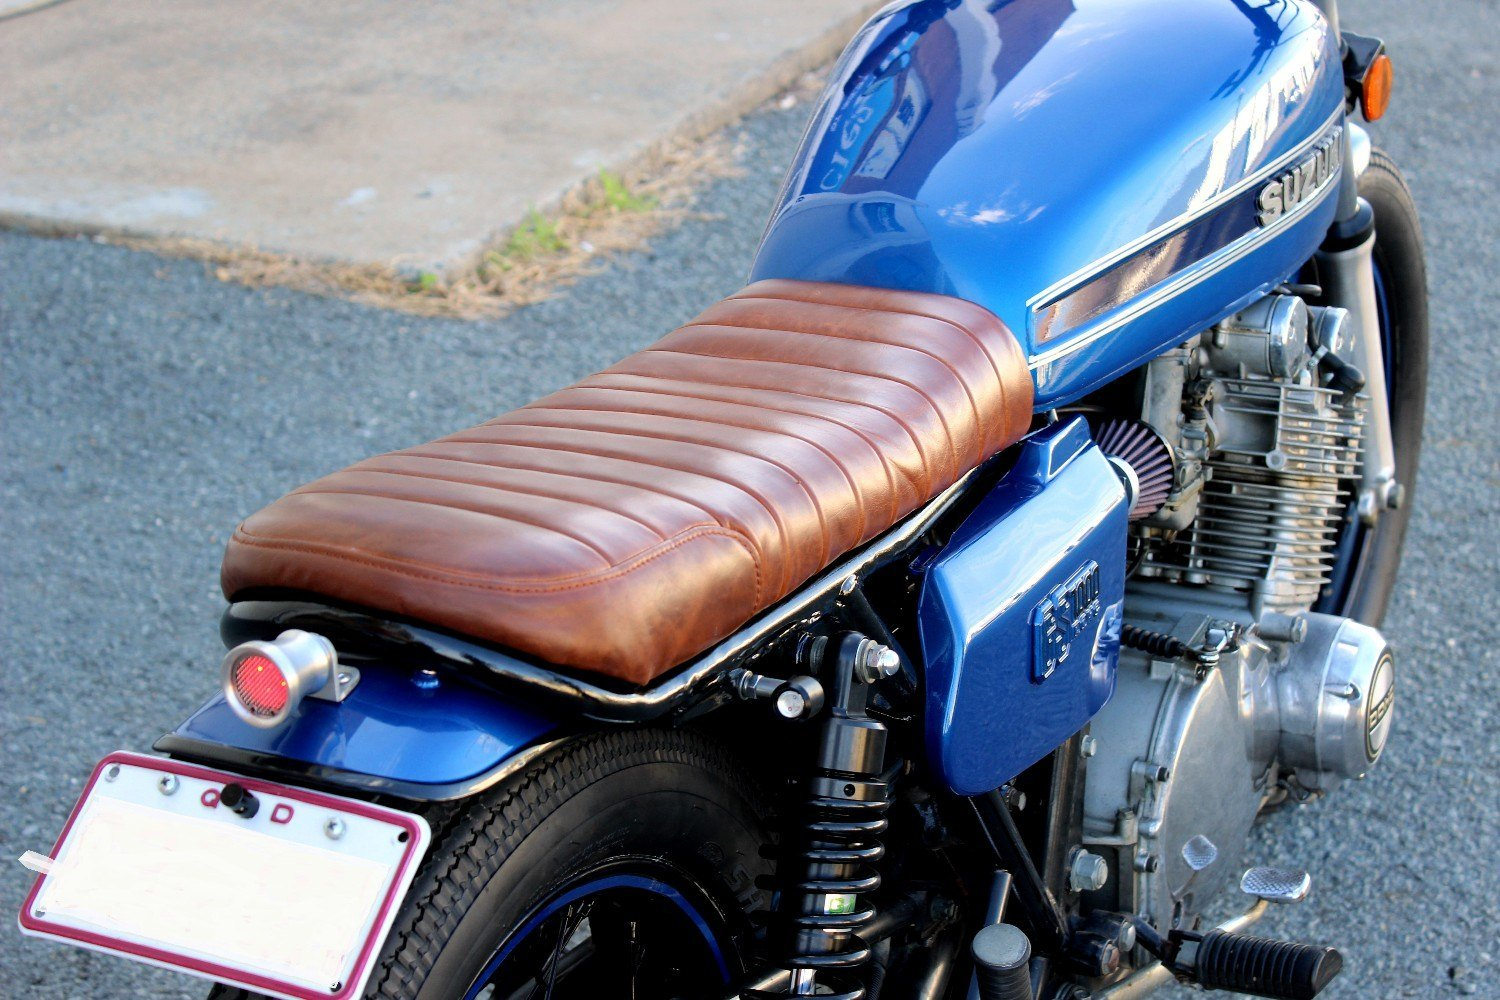 Custom Brat seat tan leather